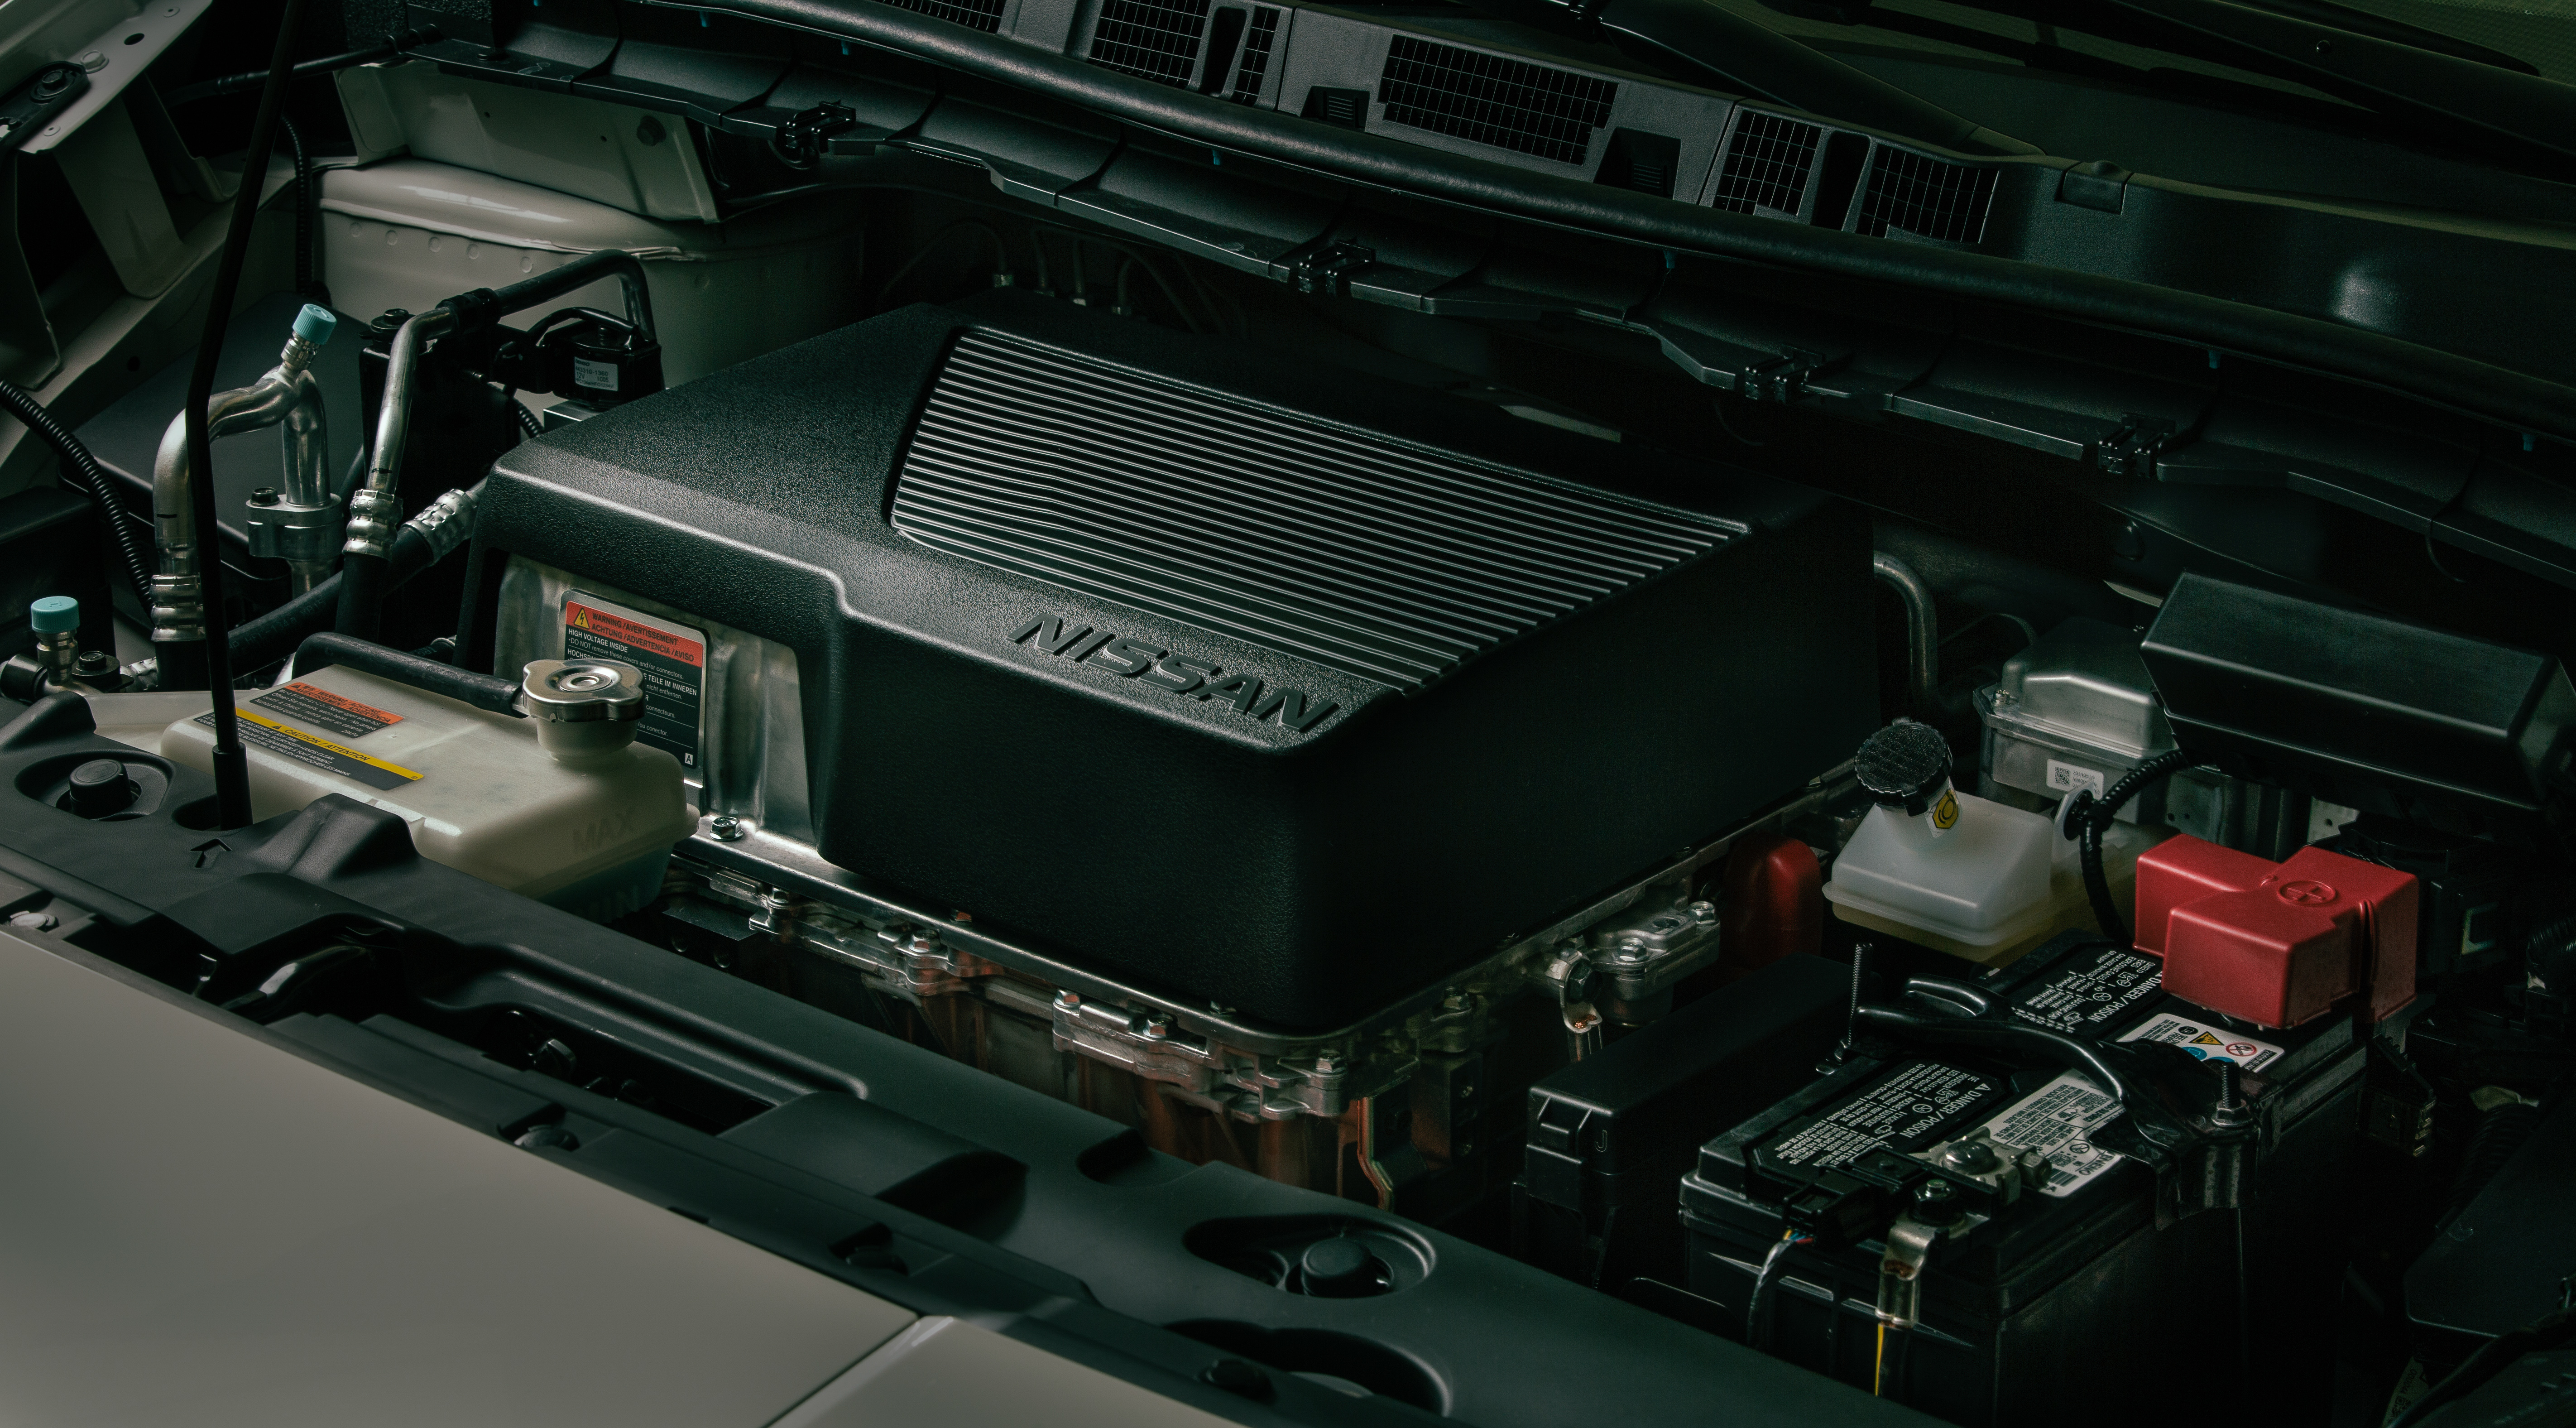 Nissan LEAF battery and components